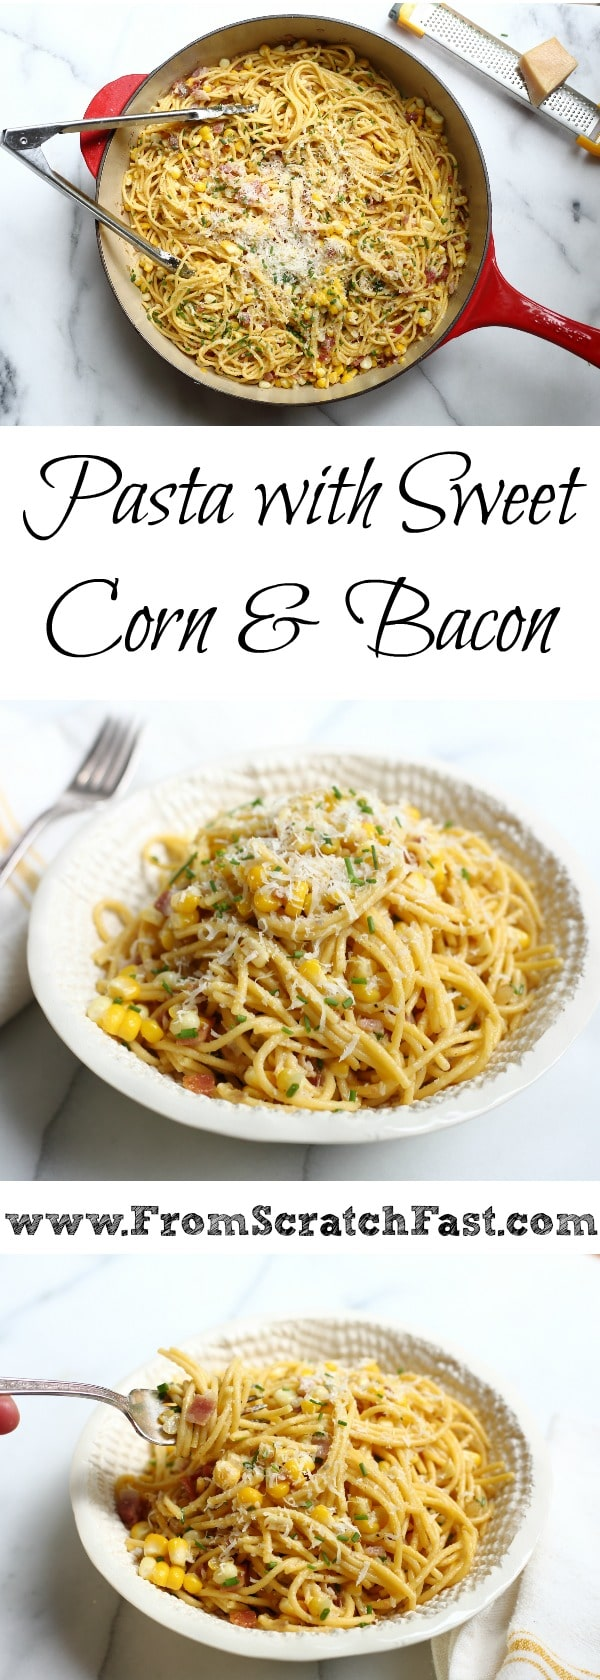 This pasta with corn and bacon is the ultimate sweet and savory weeknight meal!